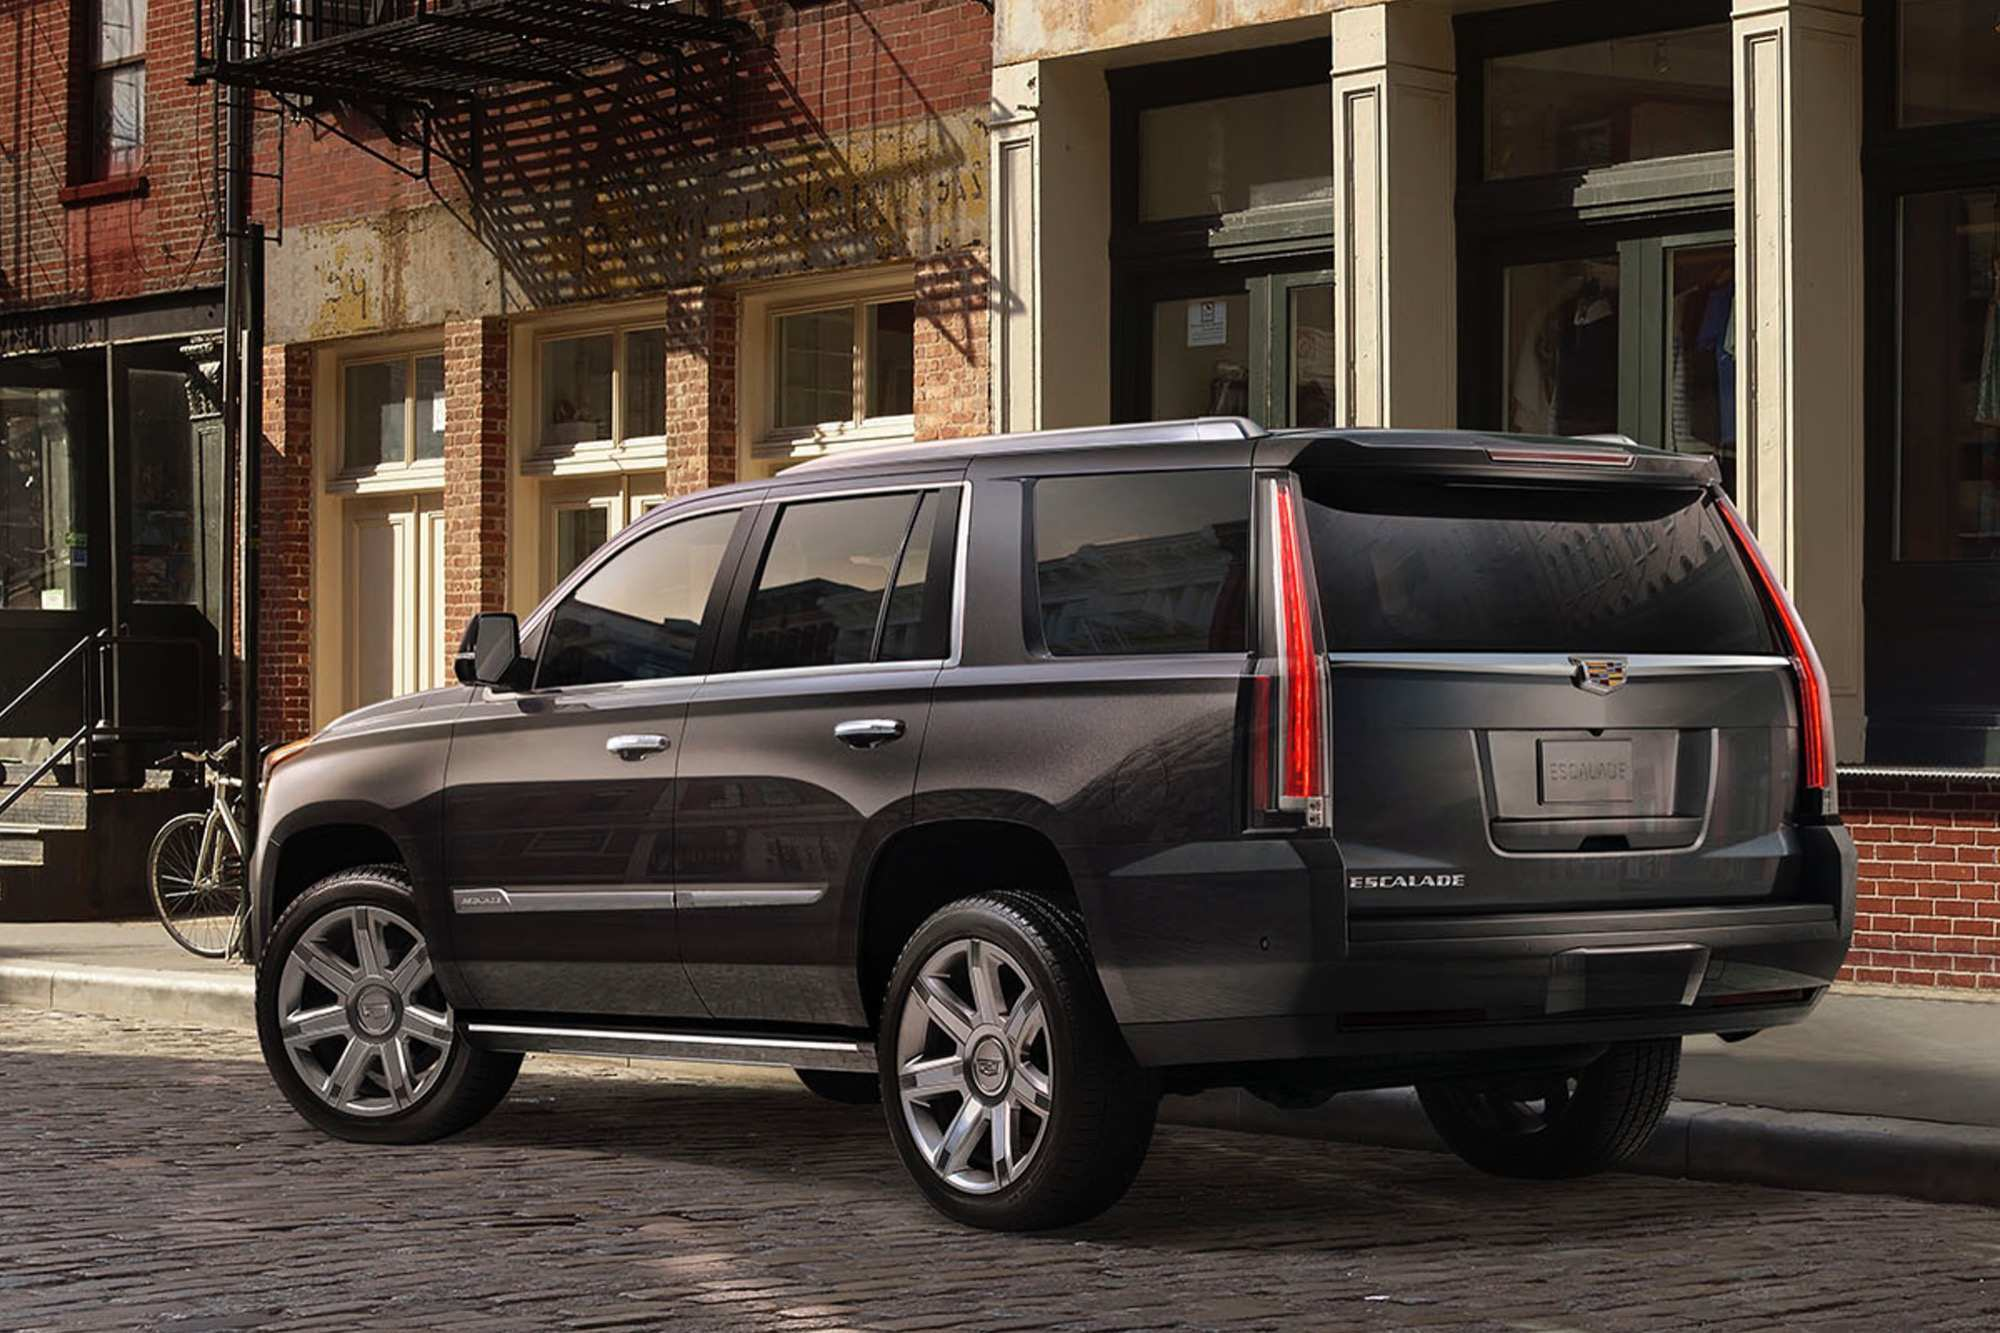 70 Best Review 2020 Cadillac Escalade Msrp Exterior with 2020 Cadillac Escalade Msrp